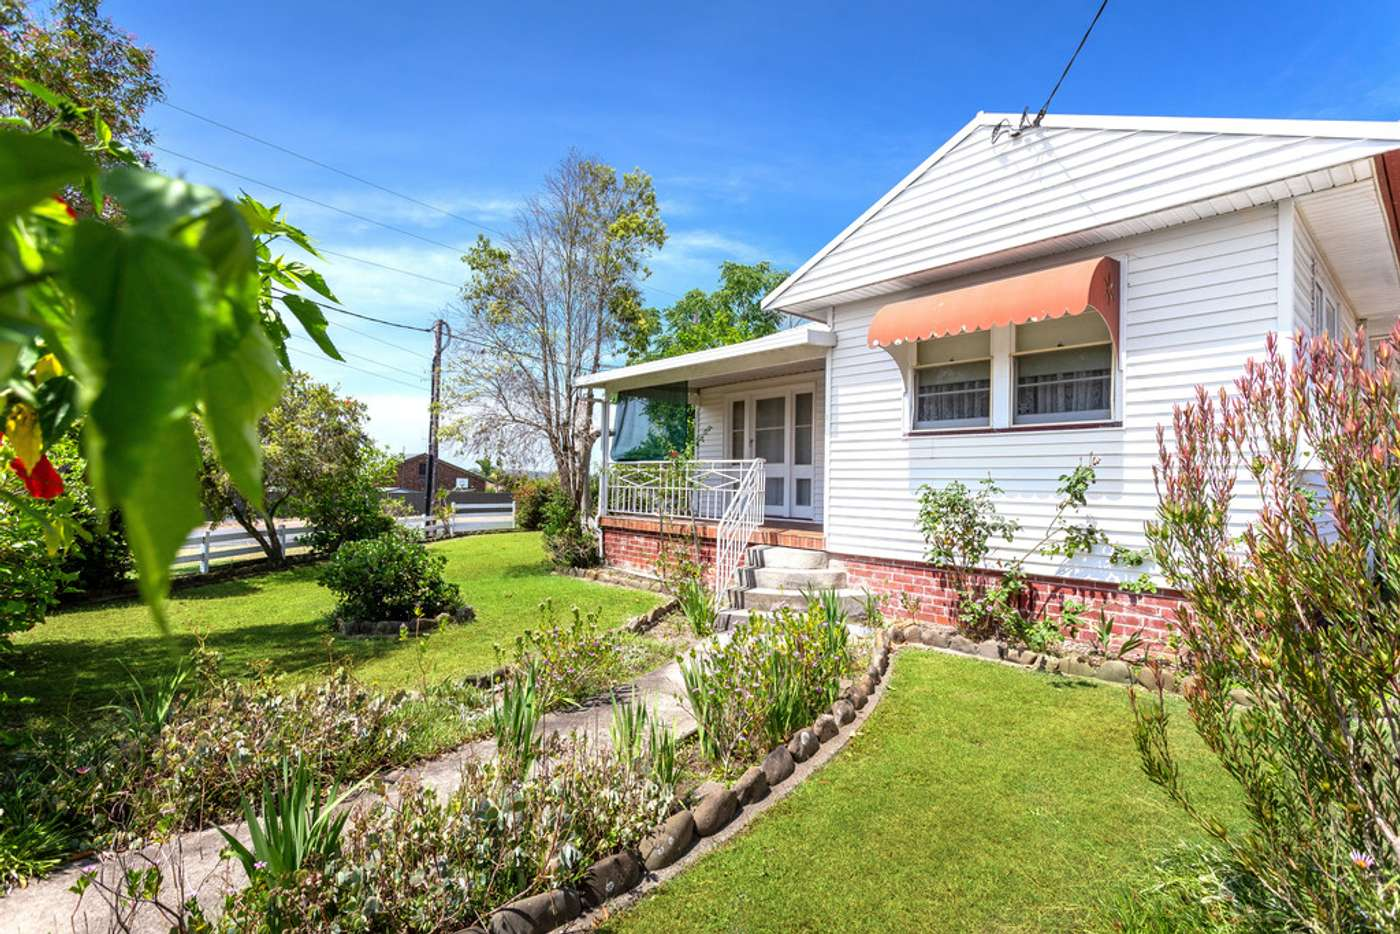 Main view of Homely house listing, 3 North Street, Taree NSW 2430